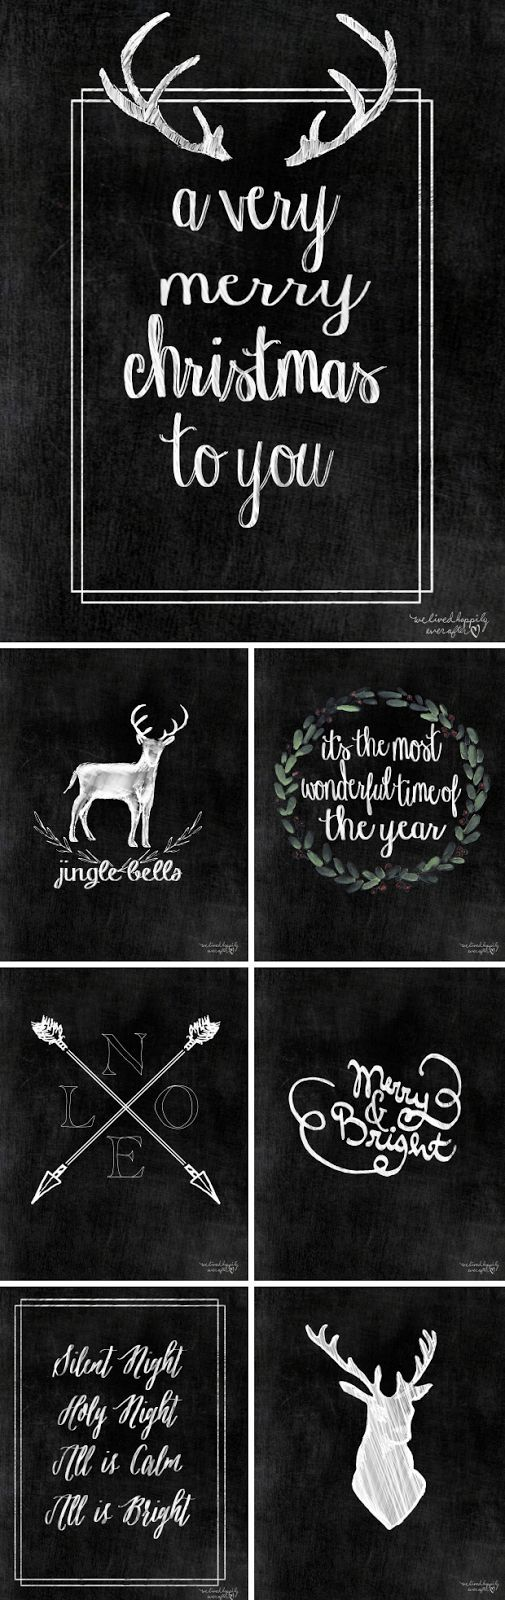 Chalkboard Designs Best 25 Christmas Chalkboard Ideas On Pinterest Chalkboard